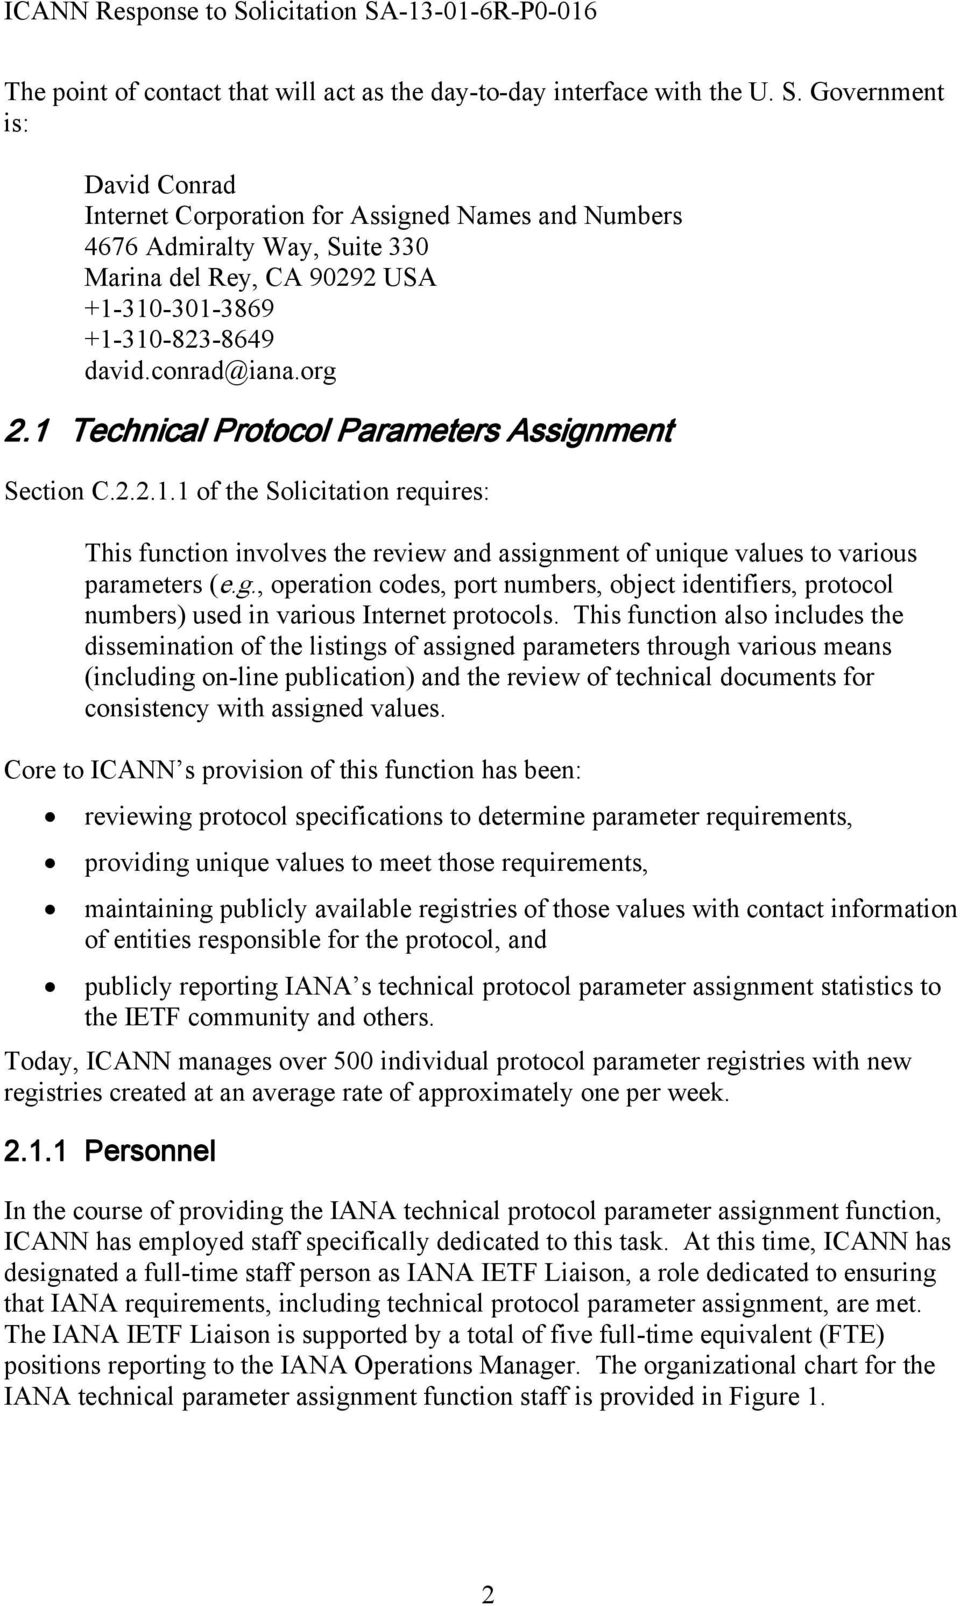 1 Technical Protocol Parameters Assignment Section C.2.2.1.1 of the Solicitation requires: This function involves the review and assignment of unique values to various parameters (e.g., operation codes, port numbers, object identifiers, protocol numbers) used in various Internet protocols.